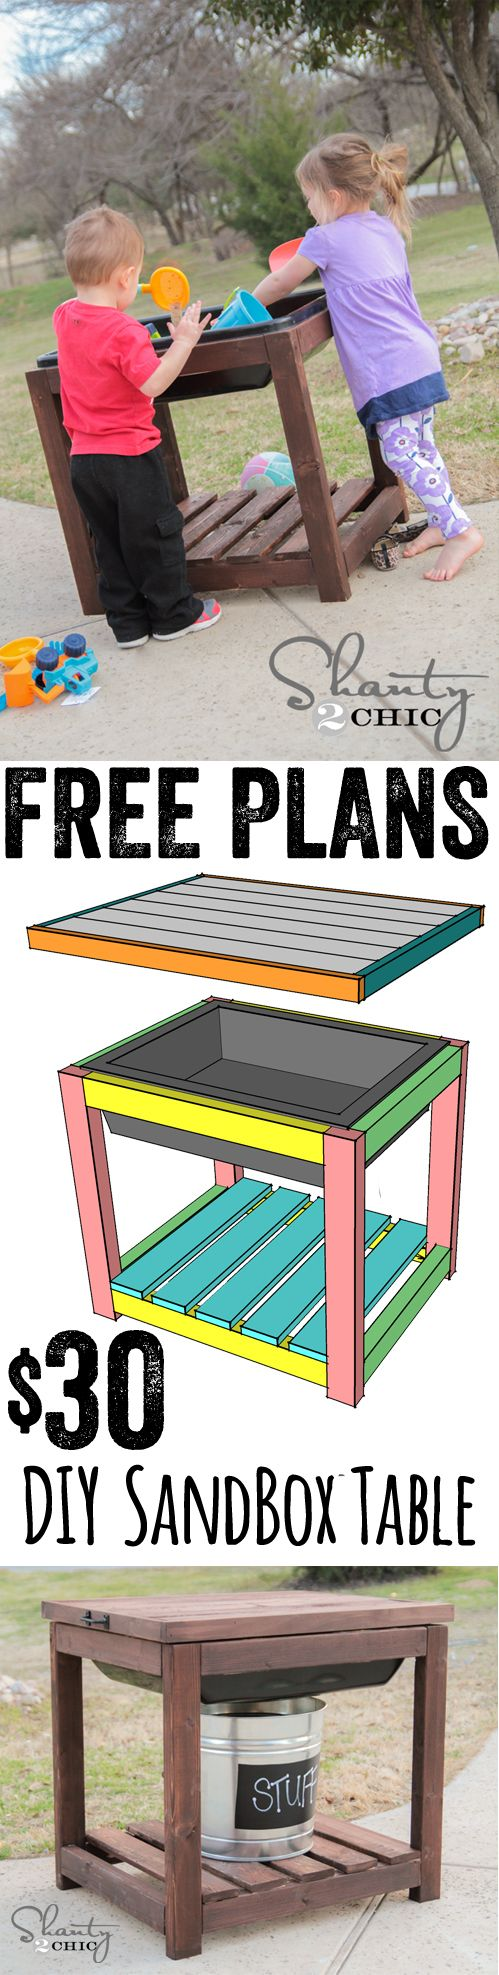 Free Plans DIY Sandbox Table… So easy and SO cheap too!